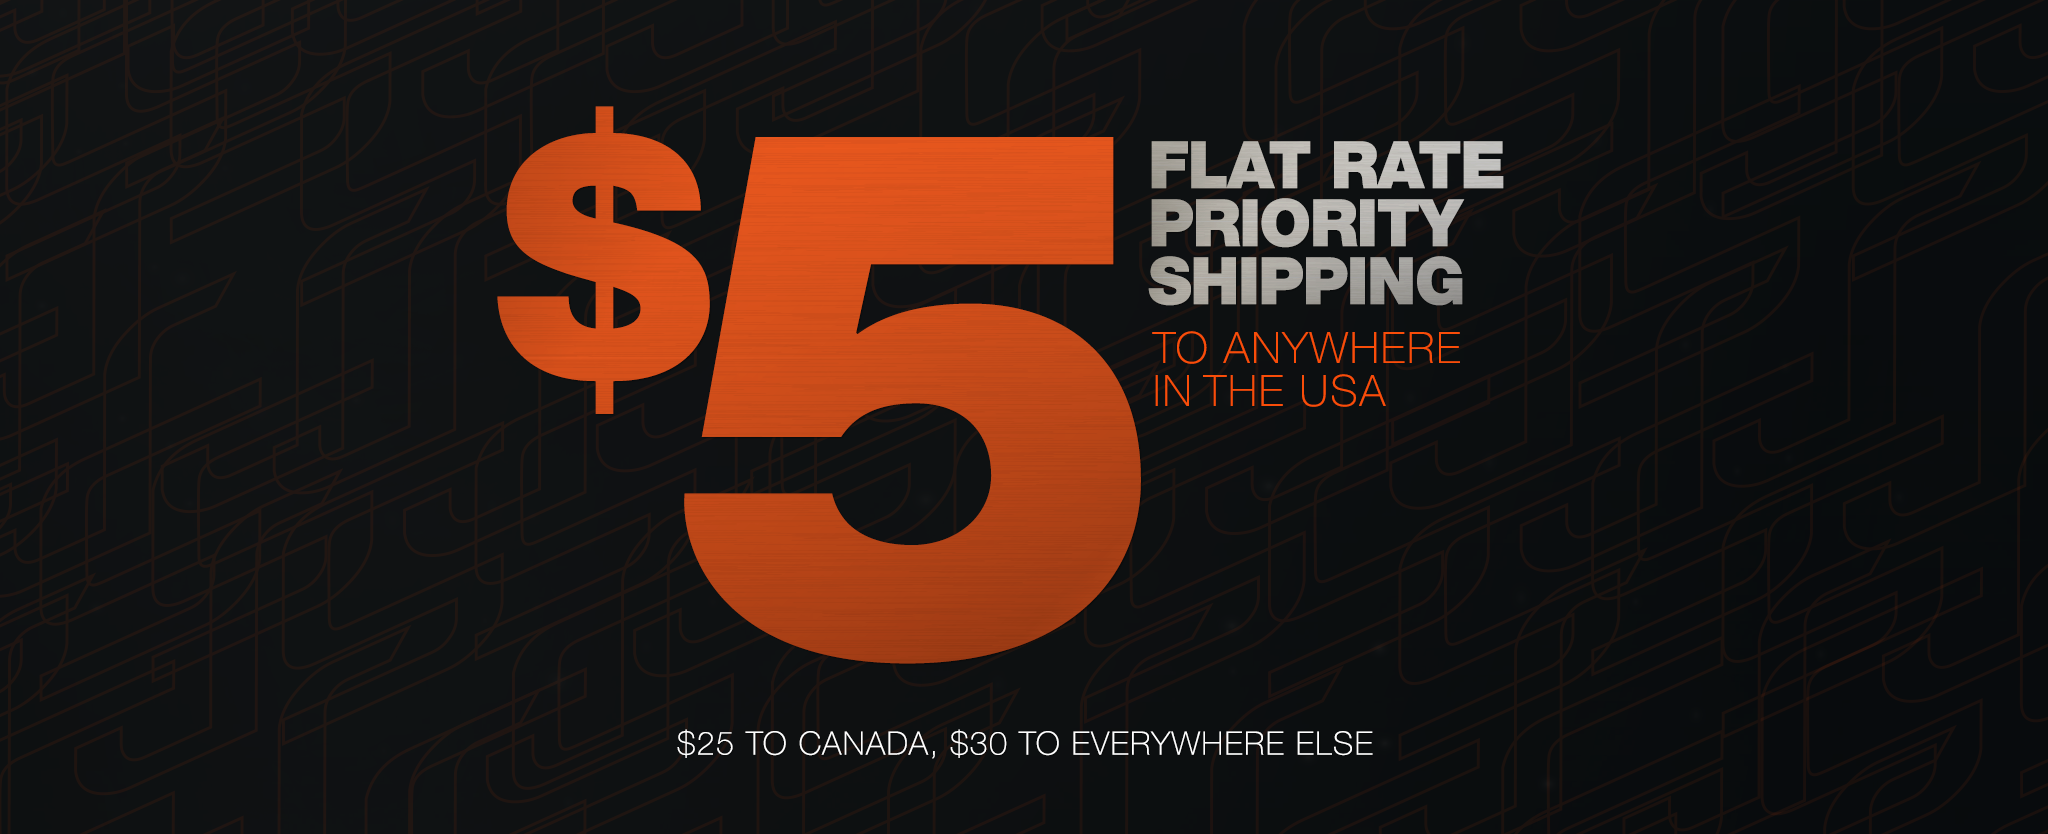 $5 Flat Rate Priority Shipping to anywhere in the USA, $25 to Canada, $30 to everywhere else